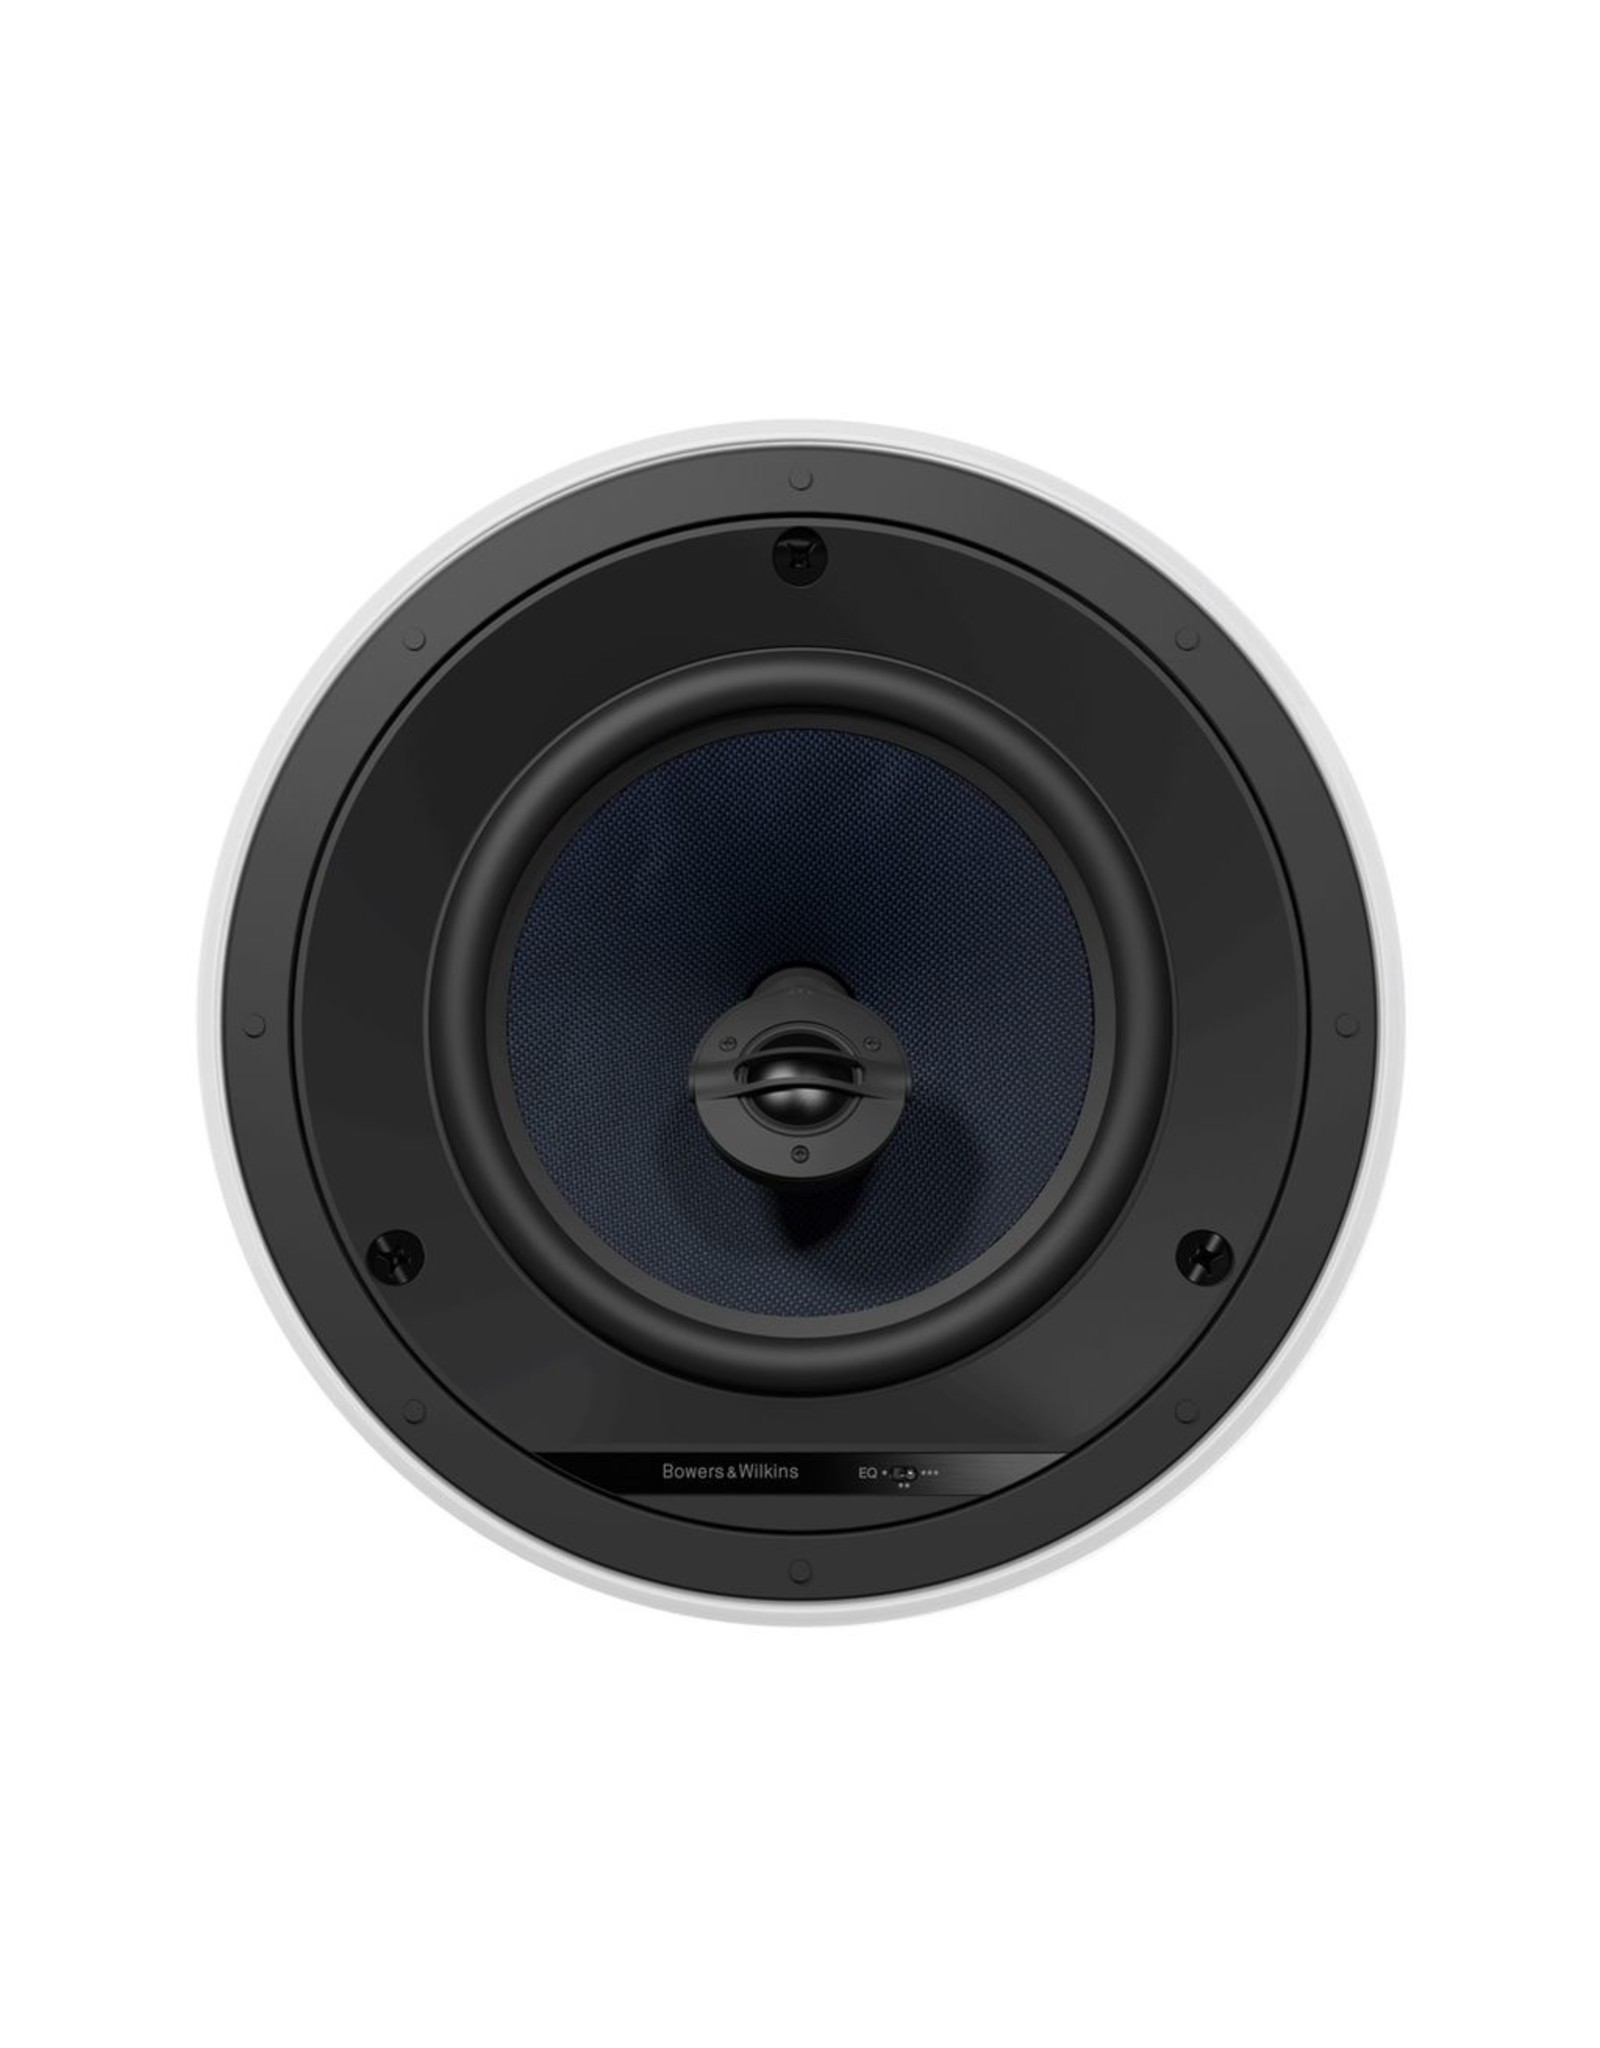 BOWERS & WILKINS B&W CCM682 In Ceiling Speakers (pair) WHITE